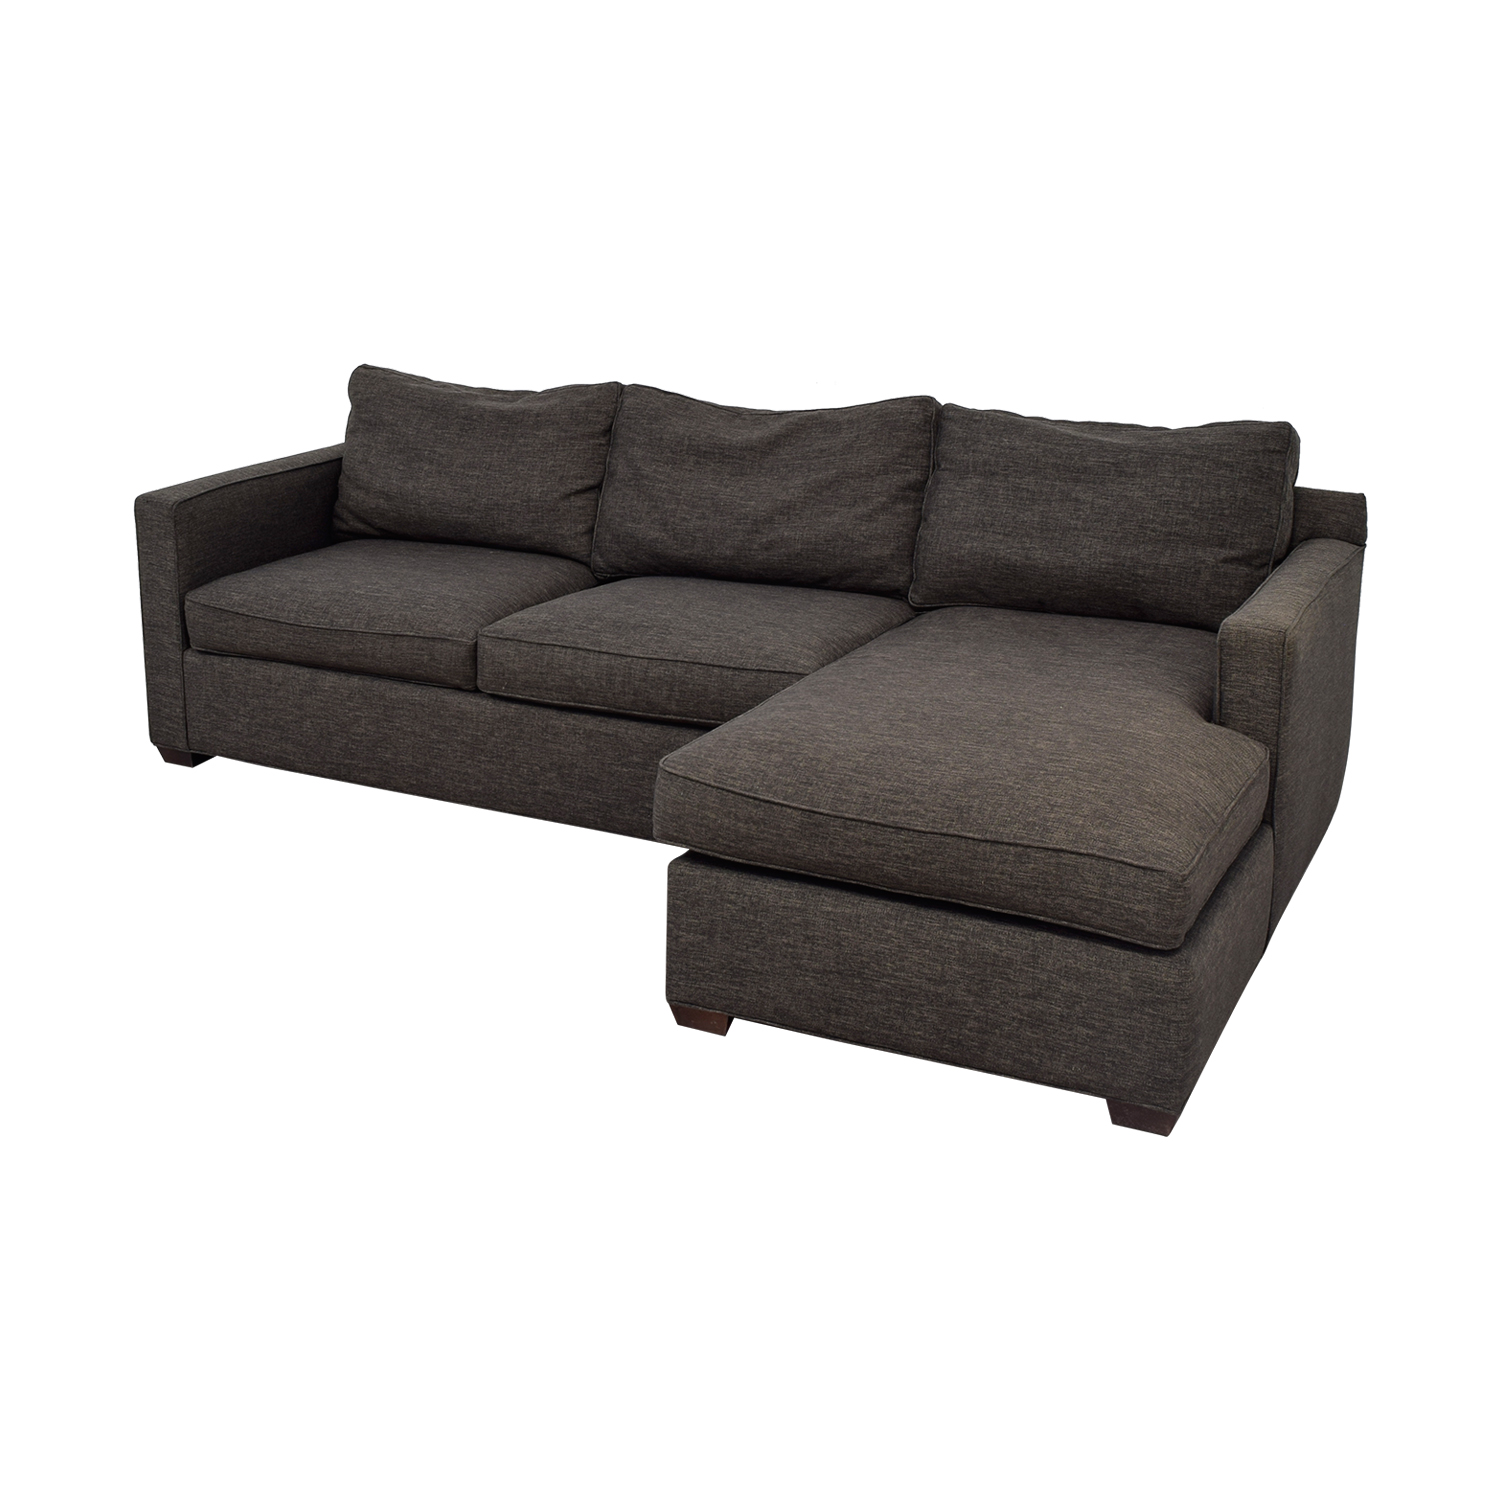 Crate & Barrel Crate & Barrel Davis Sectional used